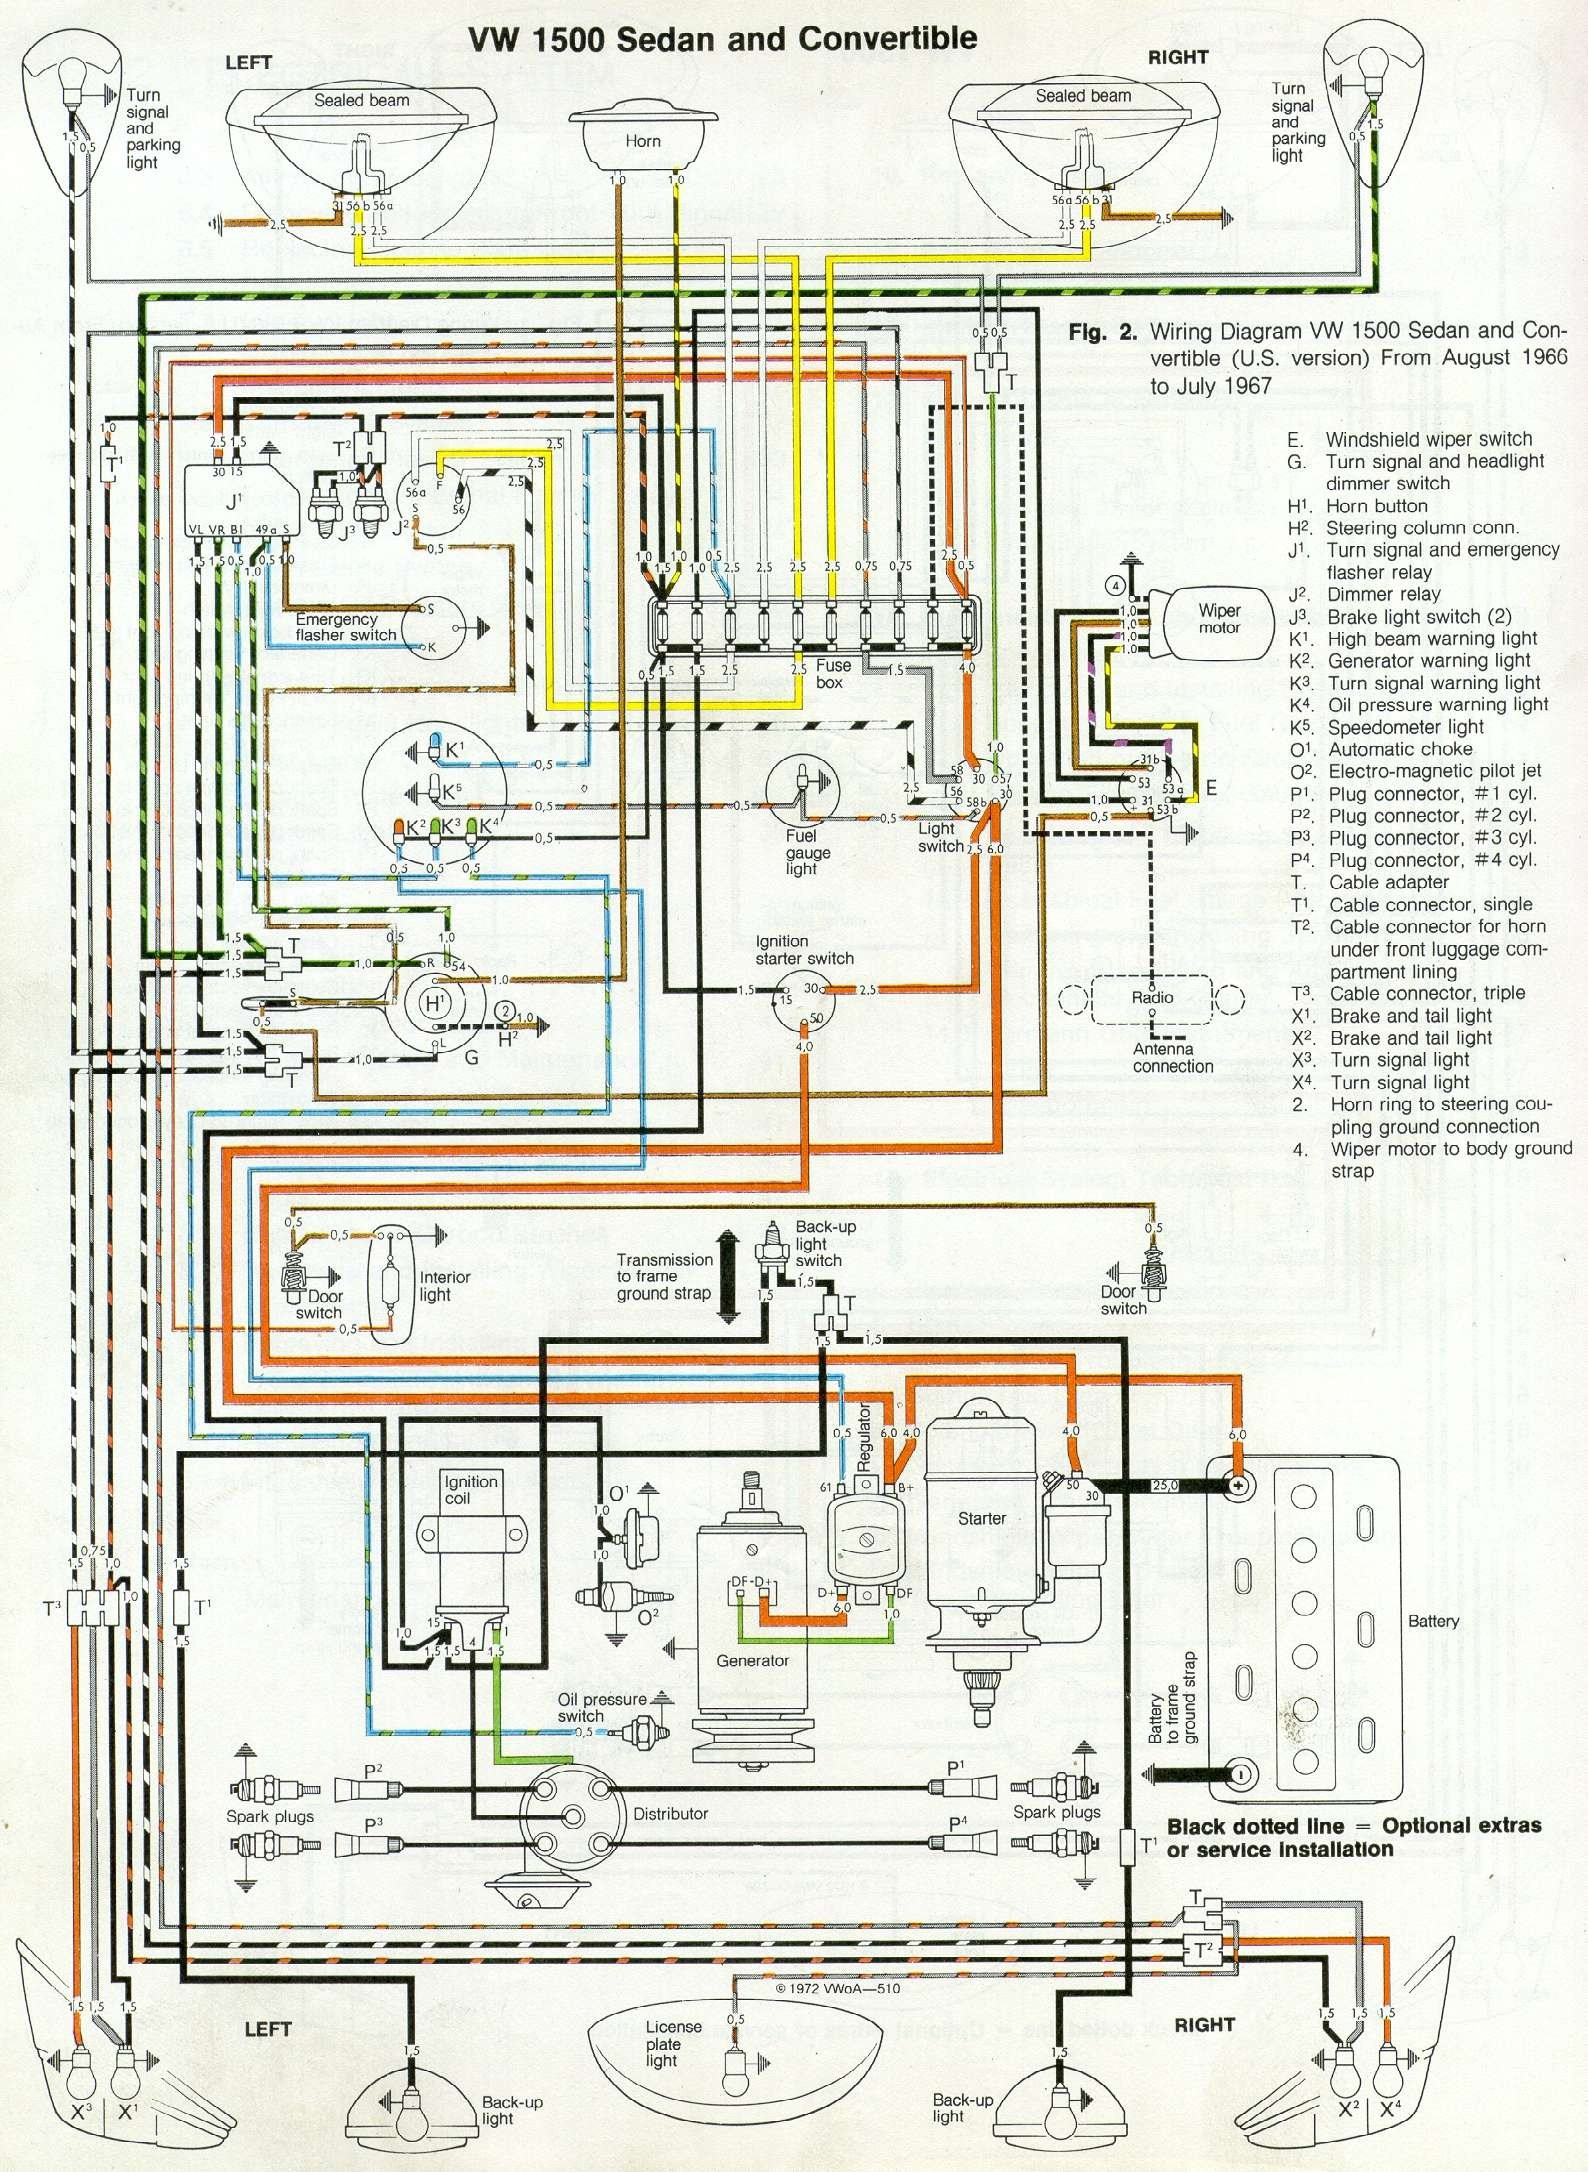 VW Beetle Wiring Digram 67 beetle wiring diagram u s version 1967 vw beetle vw beetle wiring diagram at cos-gaming.co